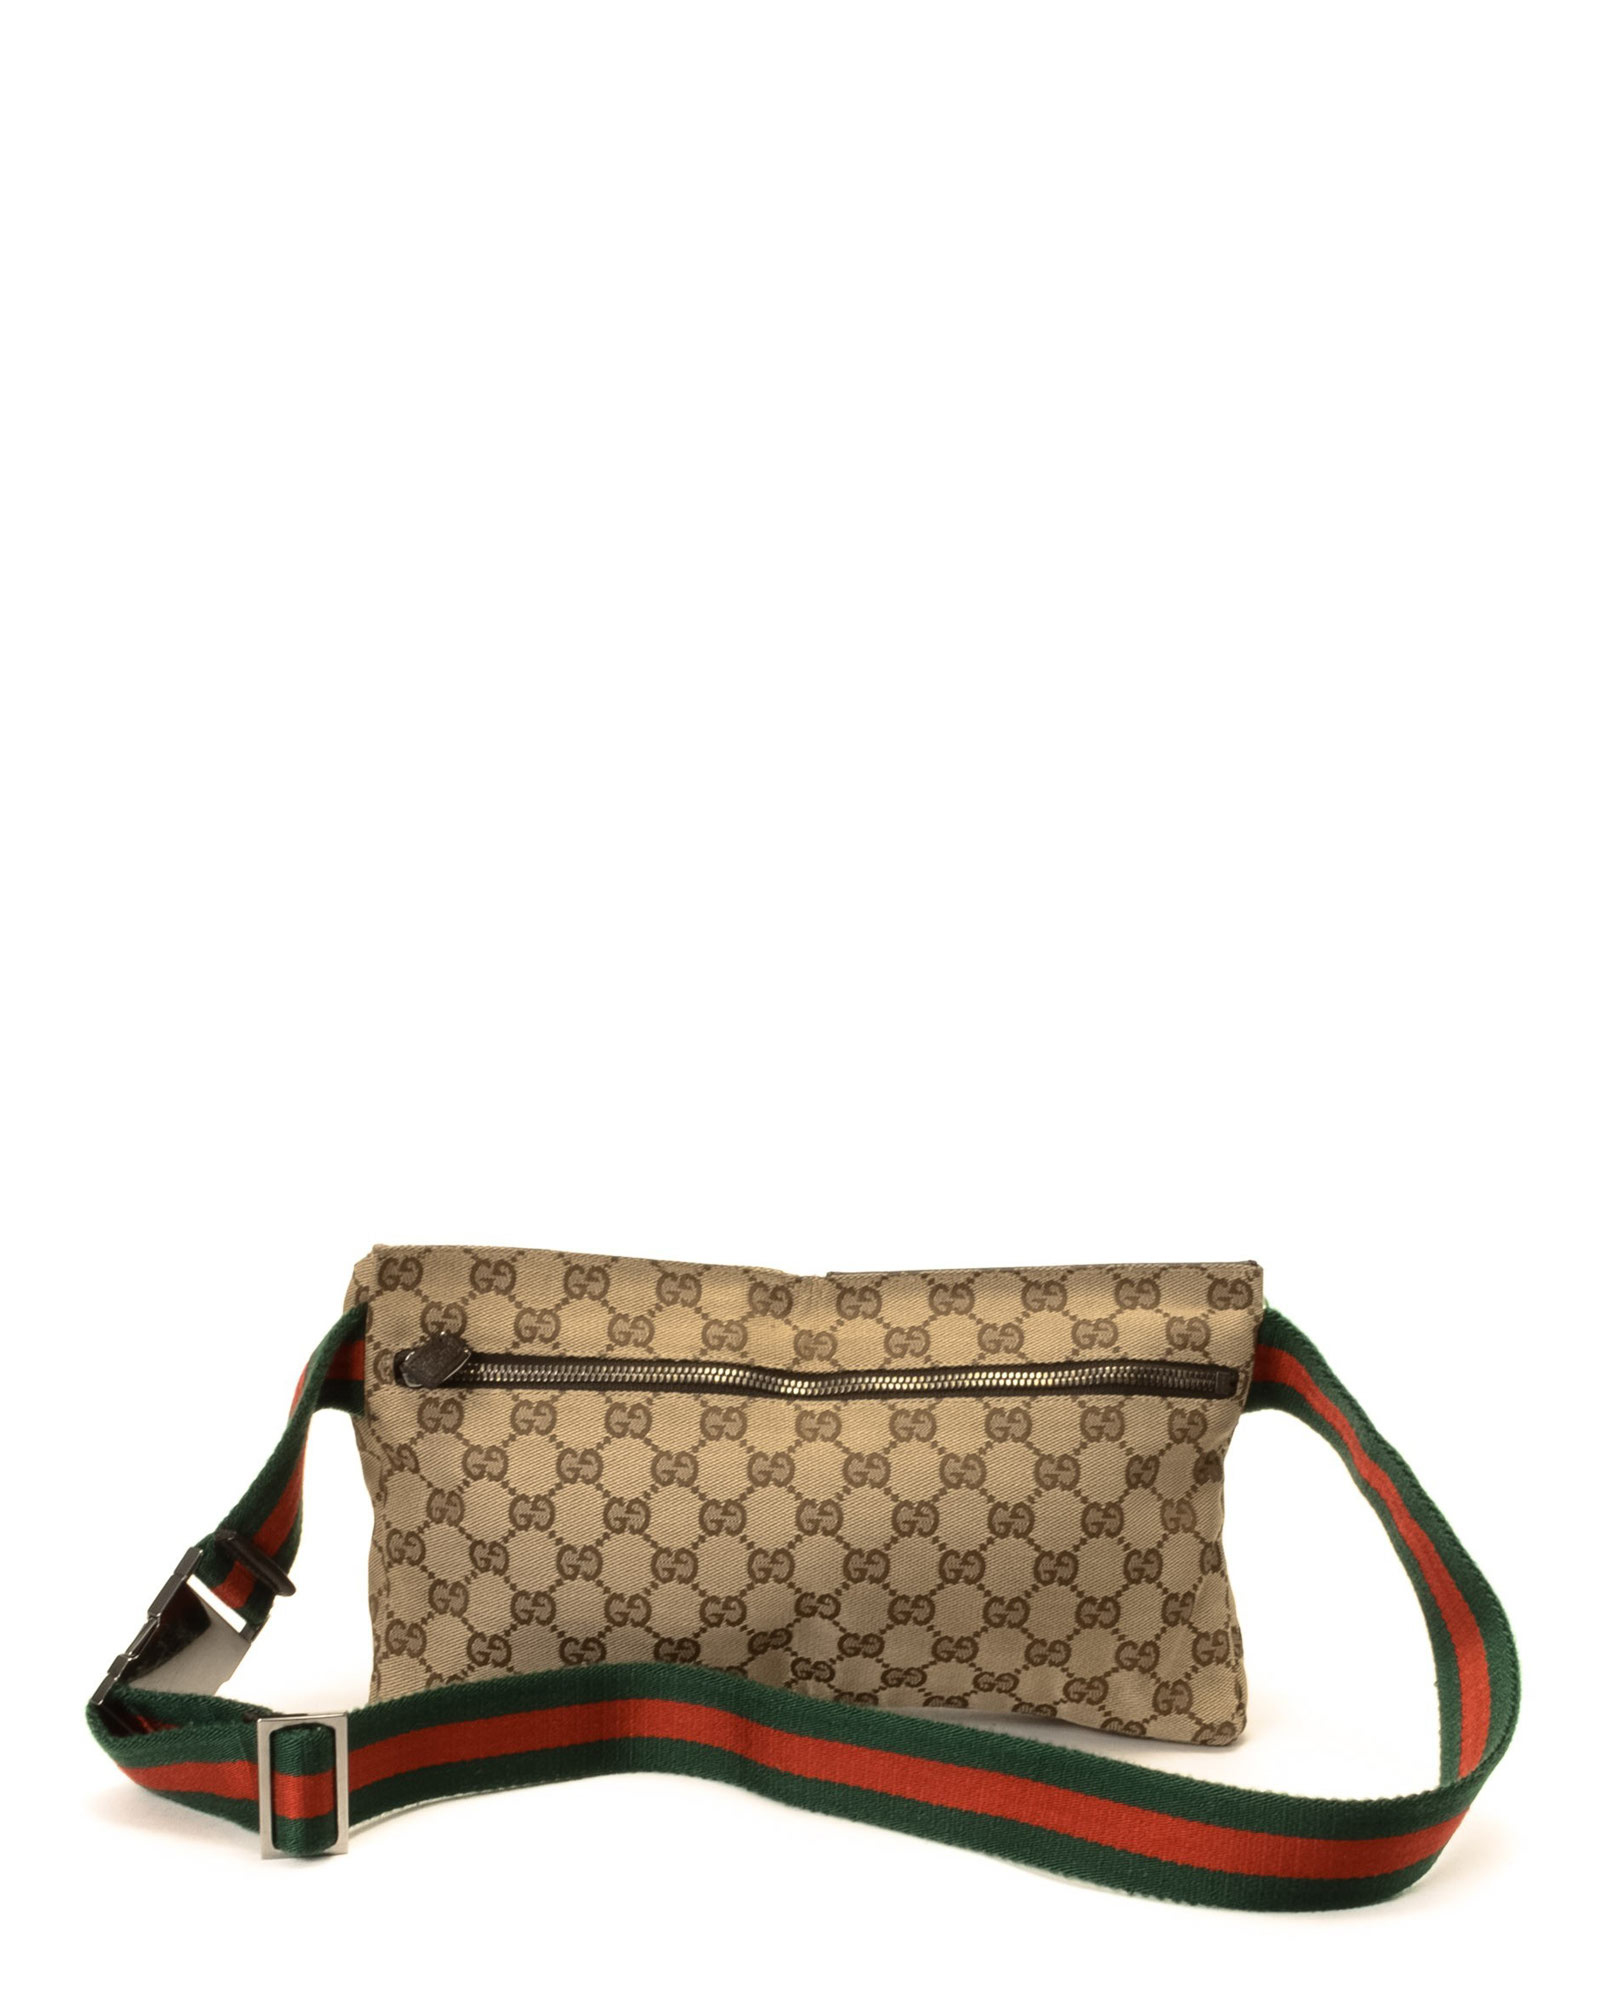 b0818a086a785e Gucci Waist Pouch - Vintage in Brown for Men - Lyst